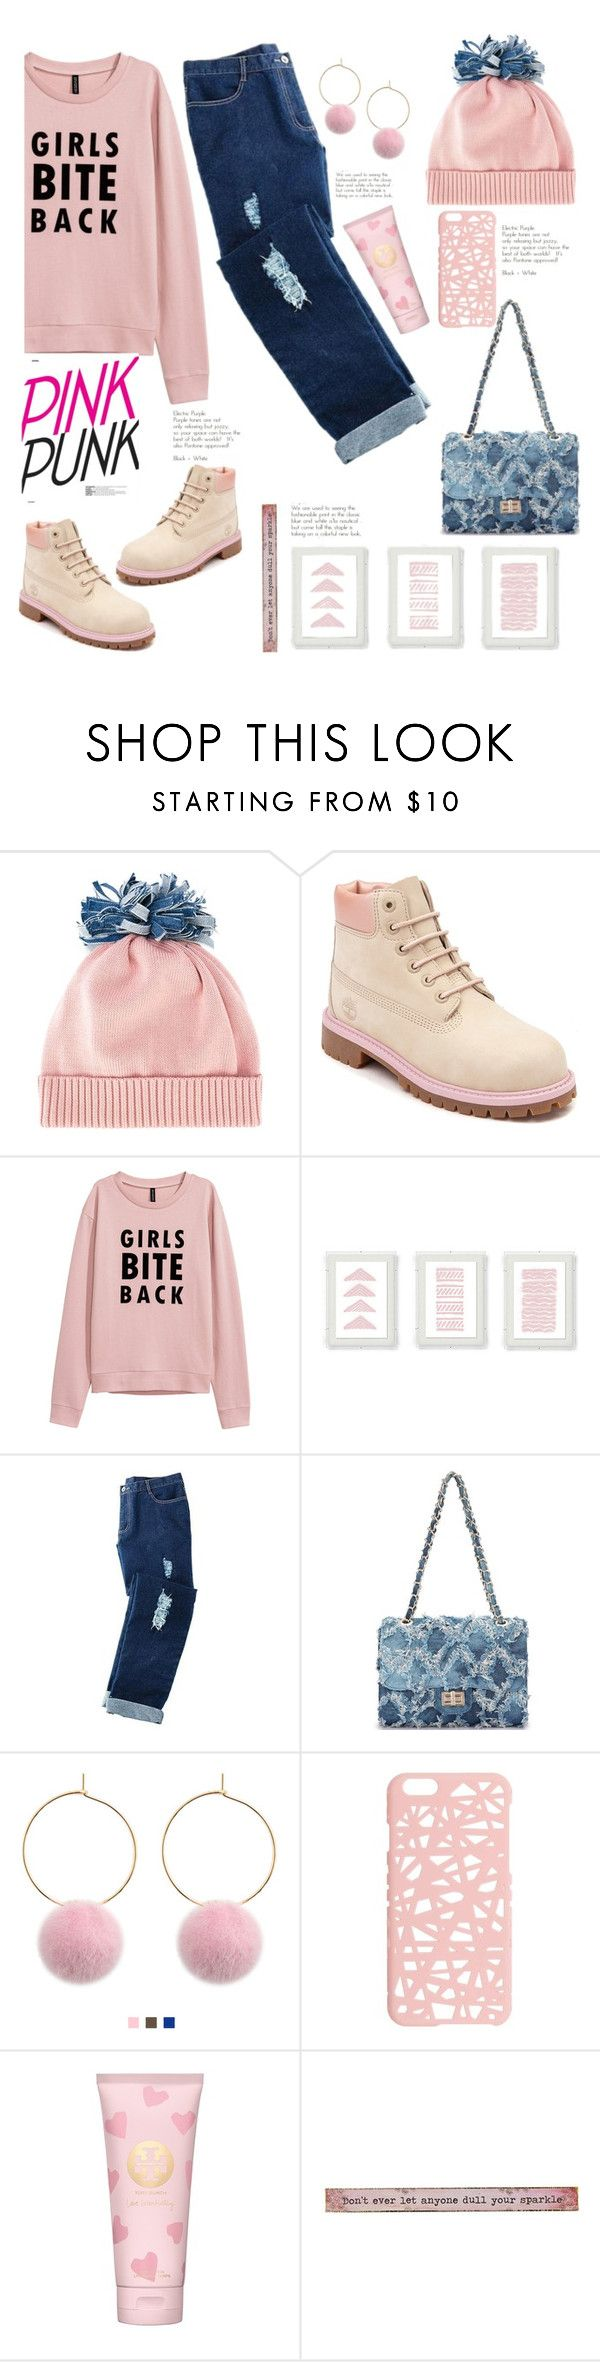 """""""girls bite back"""" by felicitysparks ❤ liked on Polyvore featuring Federica Moretti, Timberland, Avon, Miss Selfridge, Tory Burch and Natural Life"""